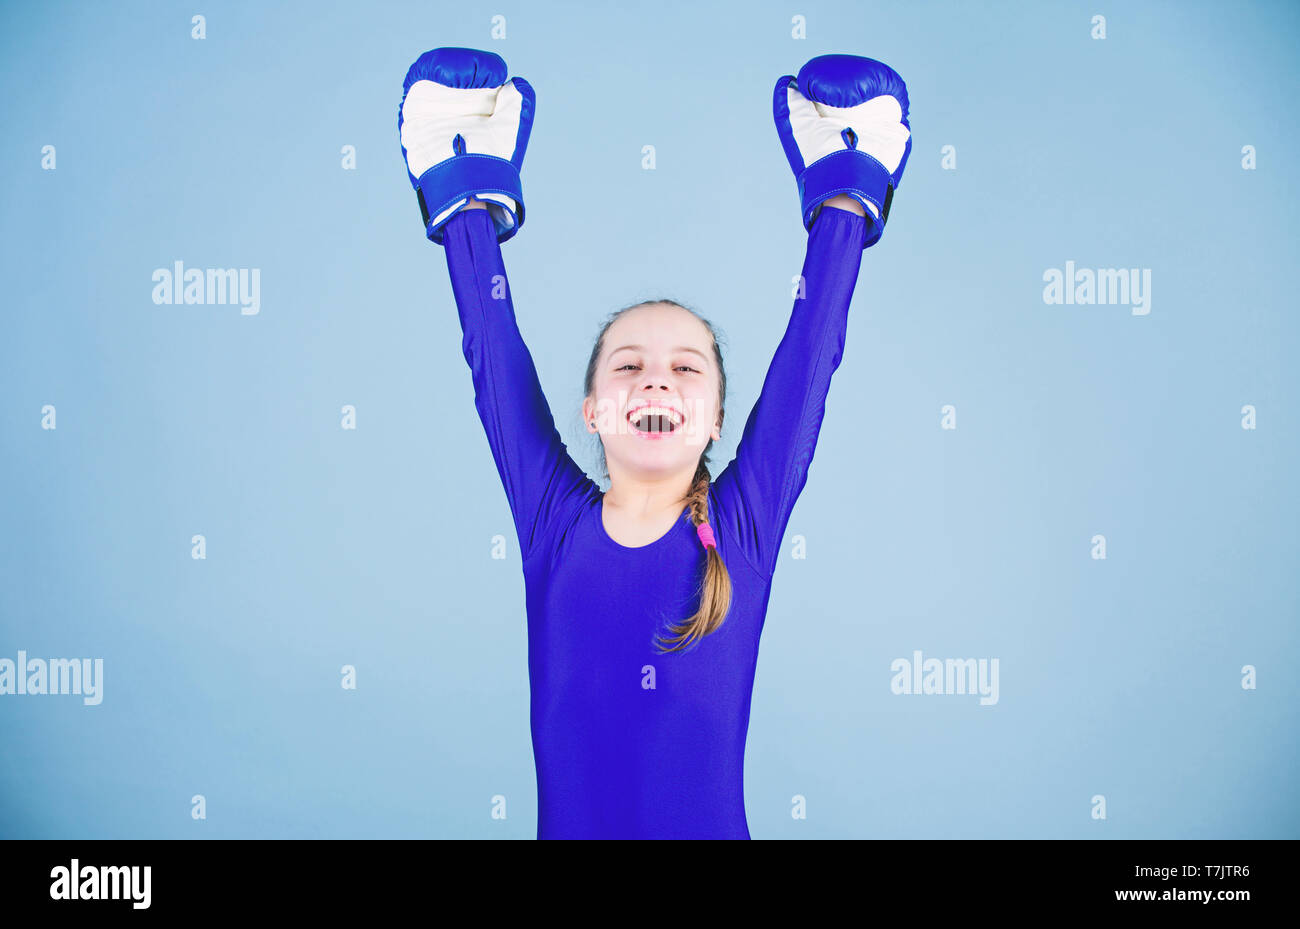 Risk of injury. Female boxer change attitudes within sport. Rise of women boxers. Girl cute boxer on blue background. With great power comes great responsibility. Boxer child in boxing gloves. - Stock Image